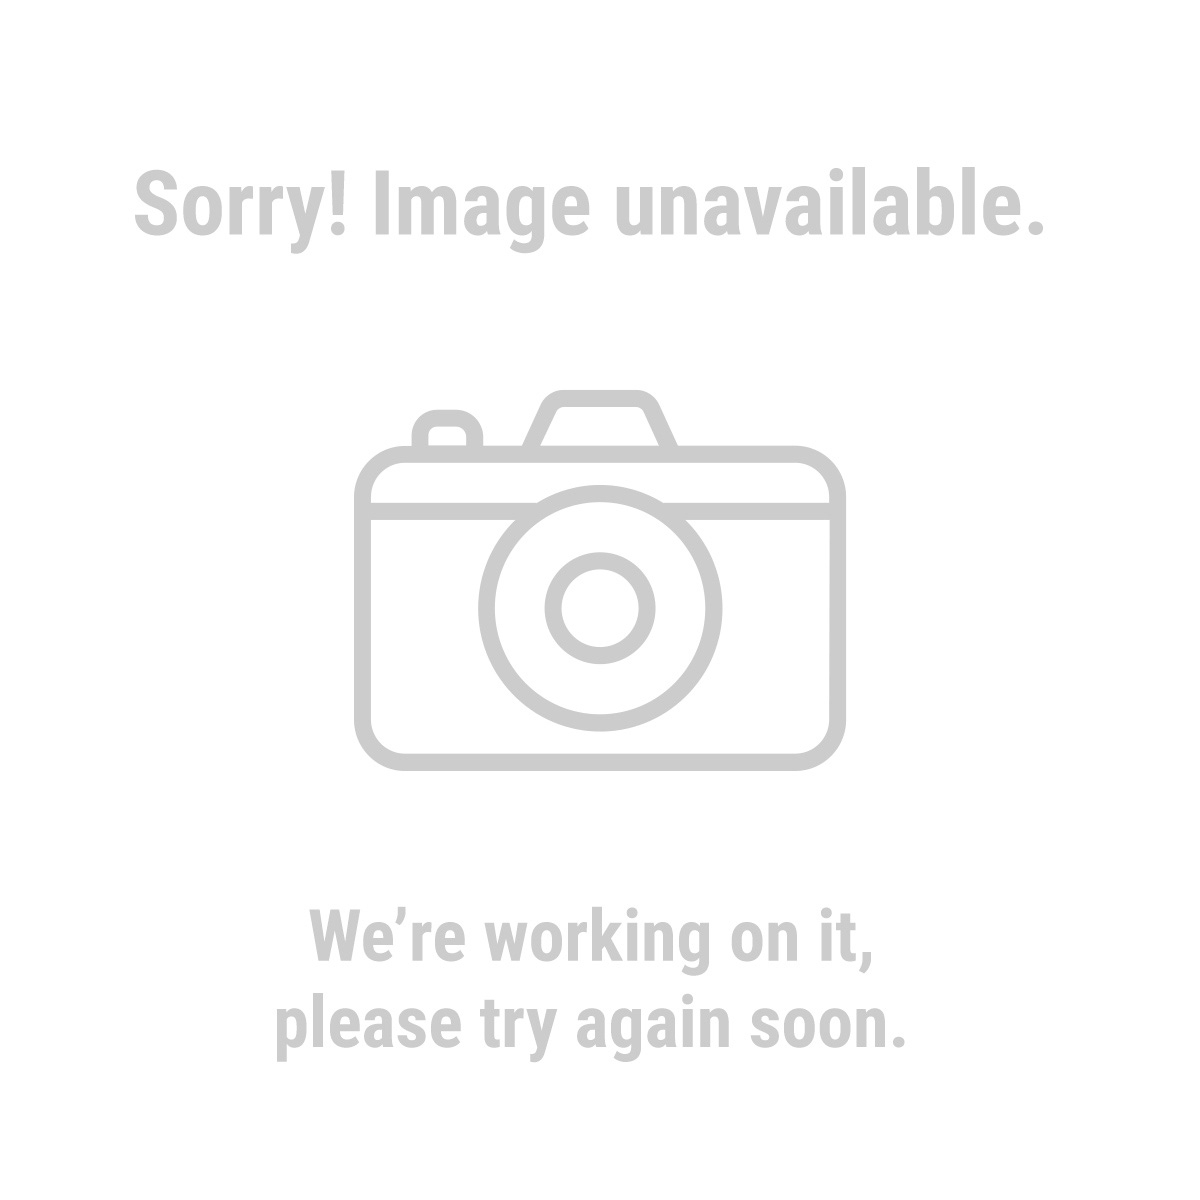 Warrior® 69017 4 Piece Large Diameter Spade Bit Set